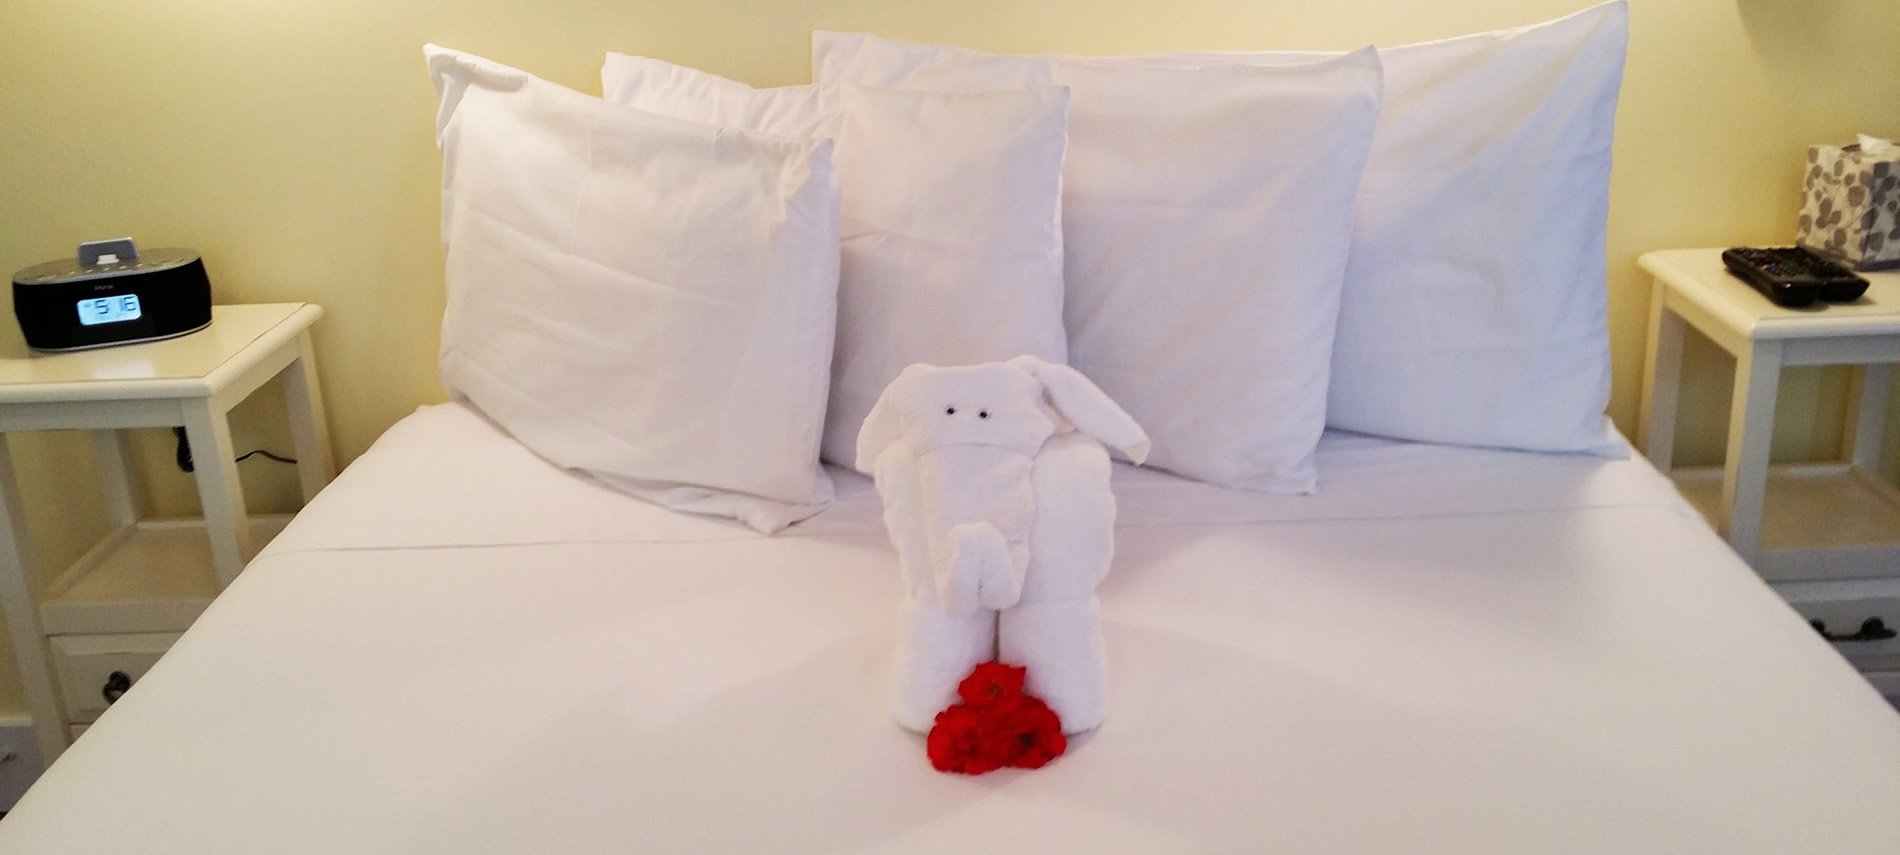 Towel sculpture of an elephant sitting on the bed with flowers by its feet